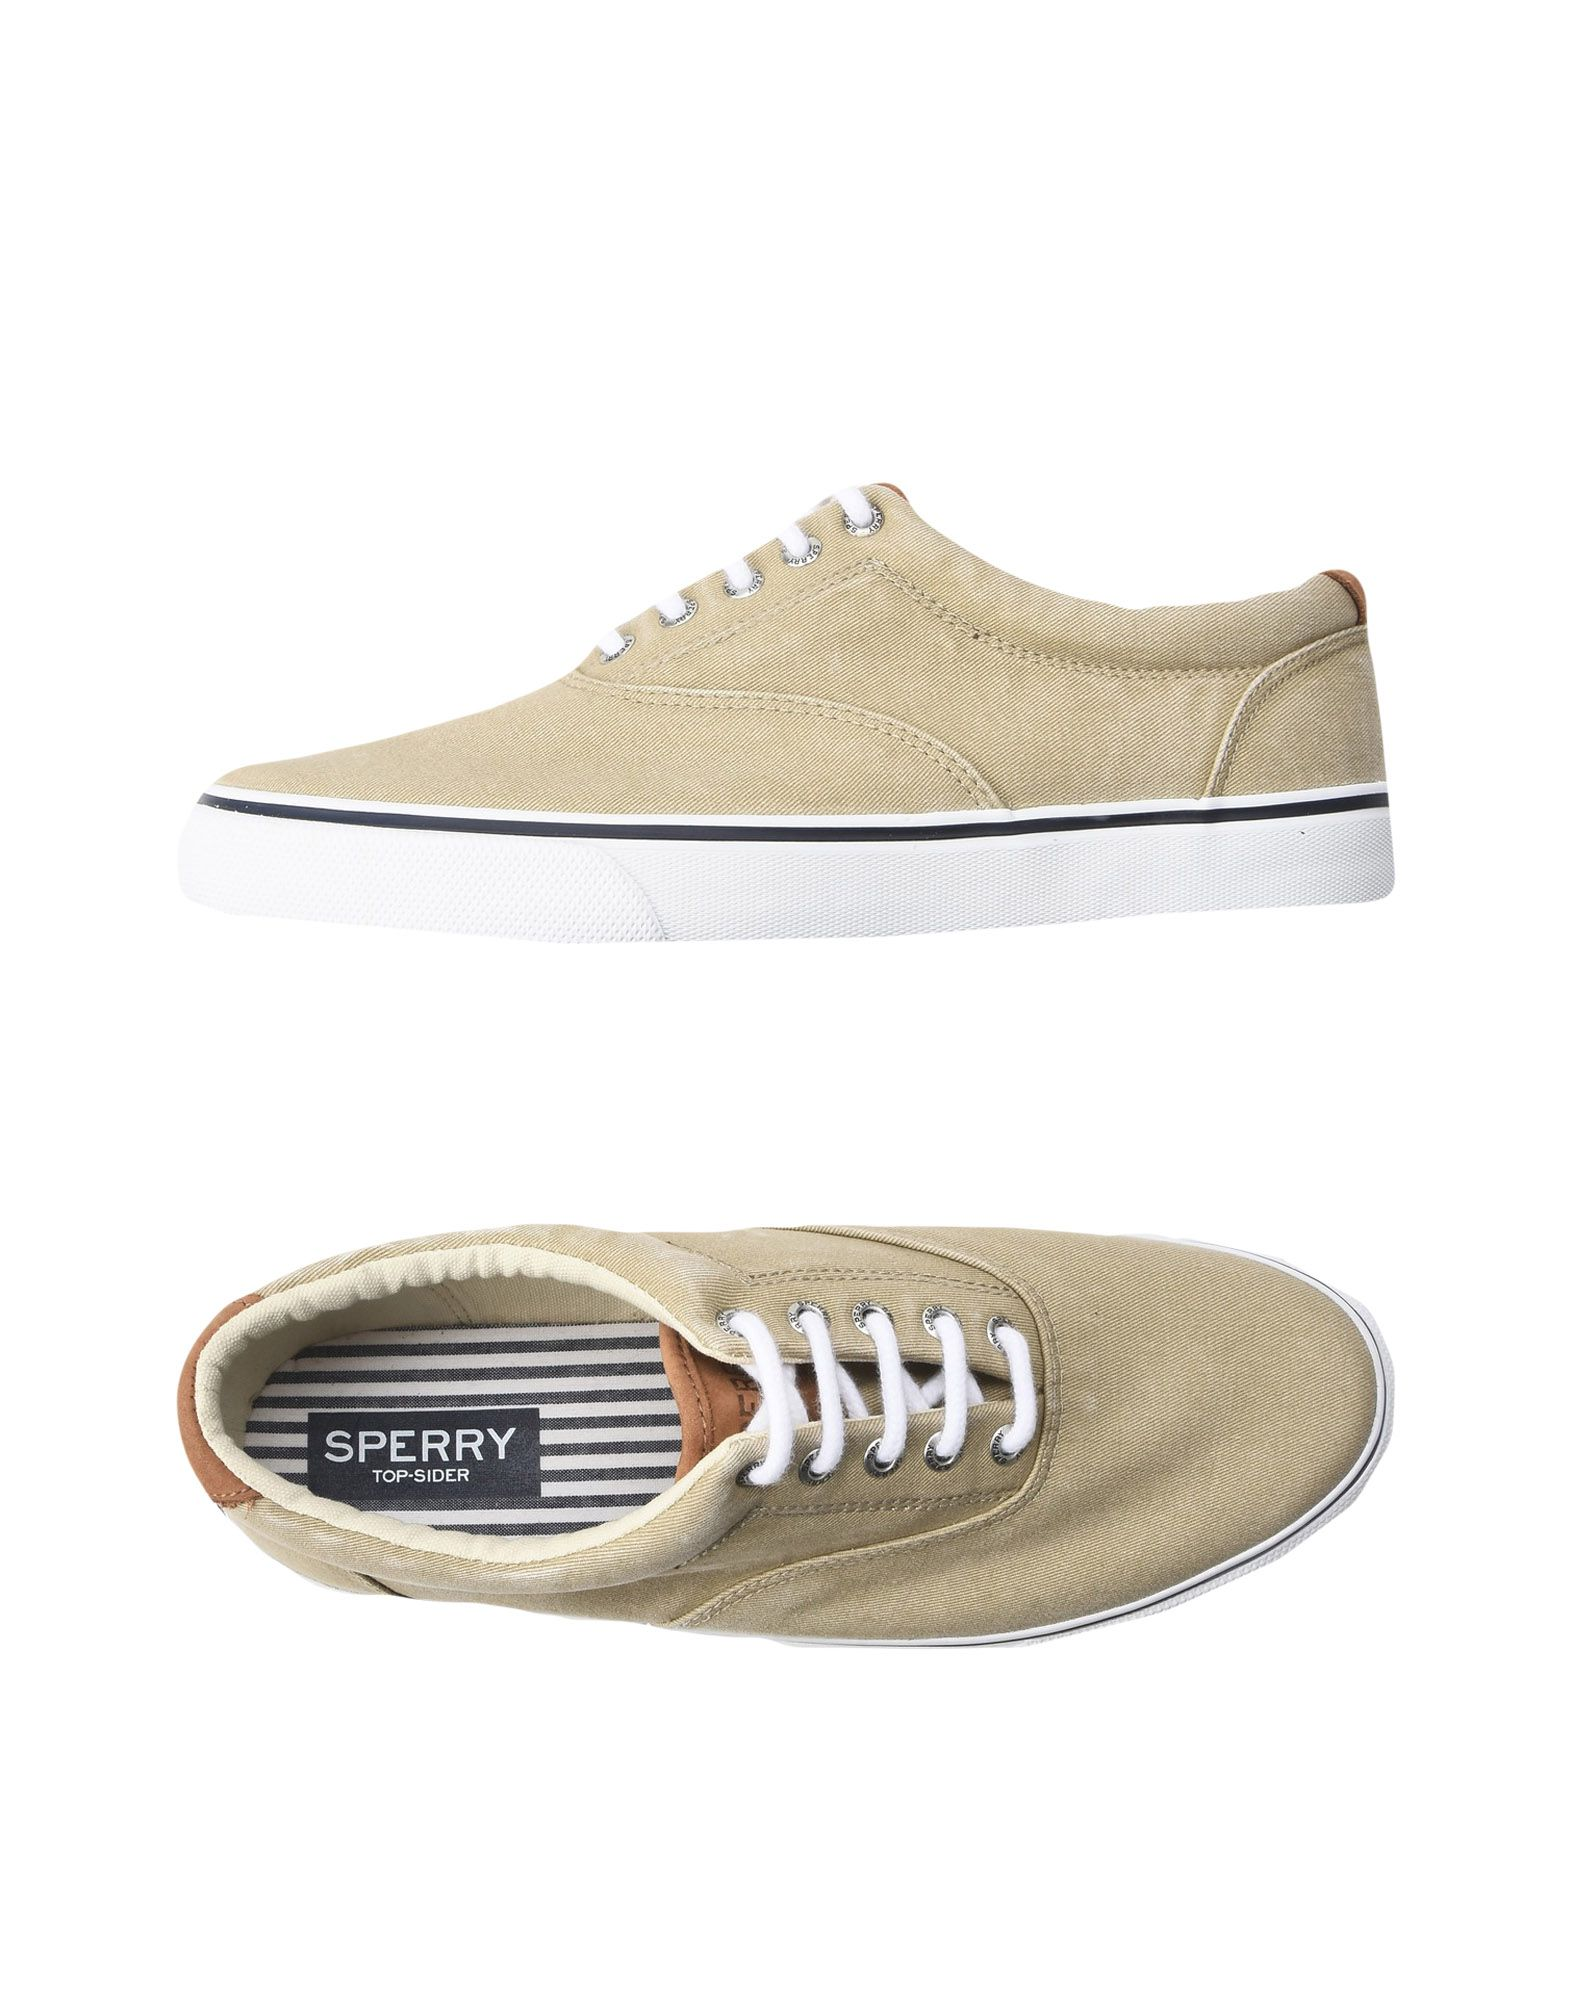 Sperry Top-Sider Striper Ll Cvo - Sneakers - online Men Sperry Top-Sider Sneakers online - on  Canada - 11221049WX 615e18